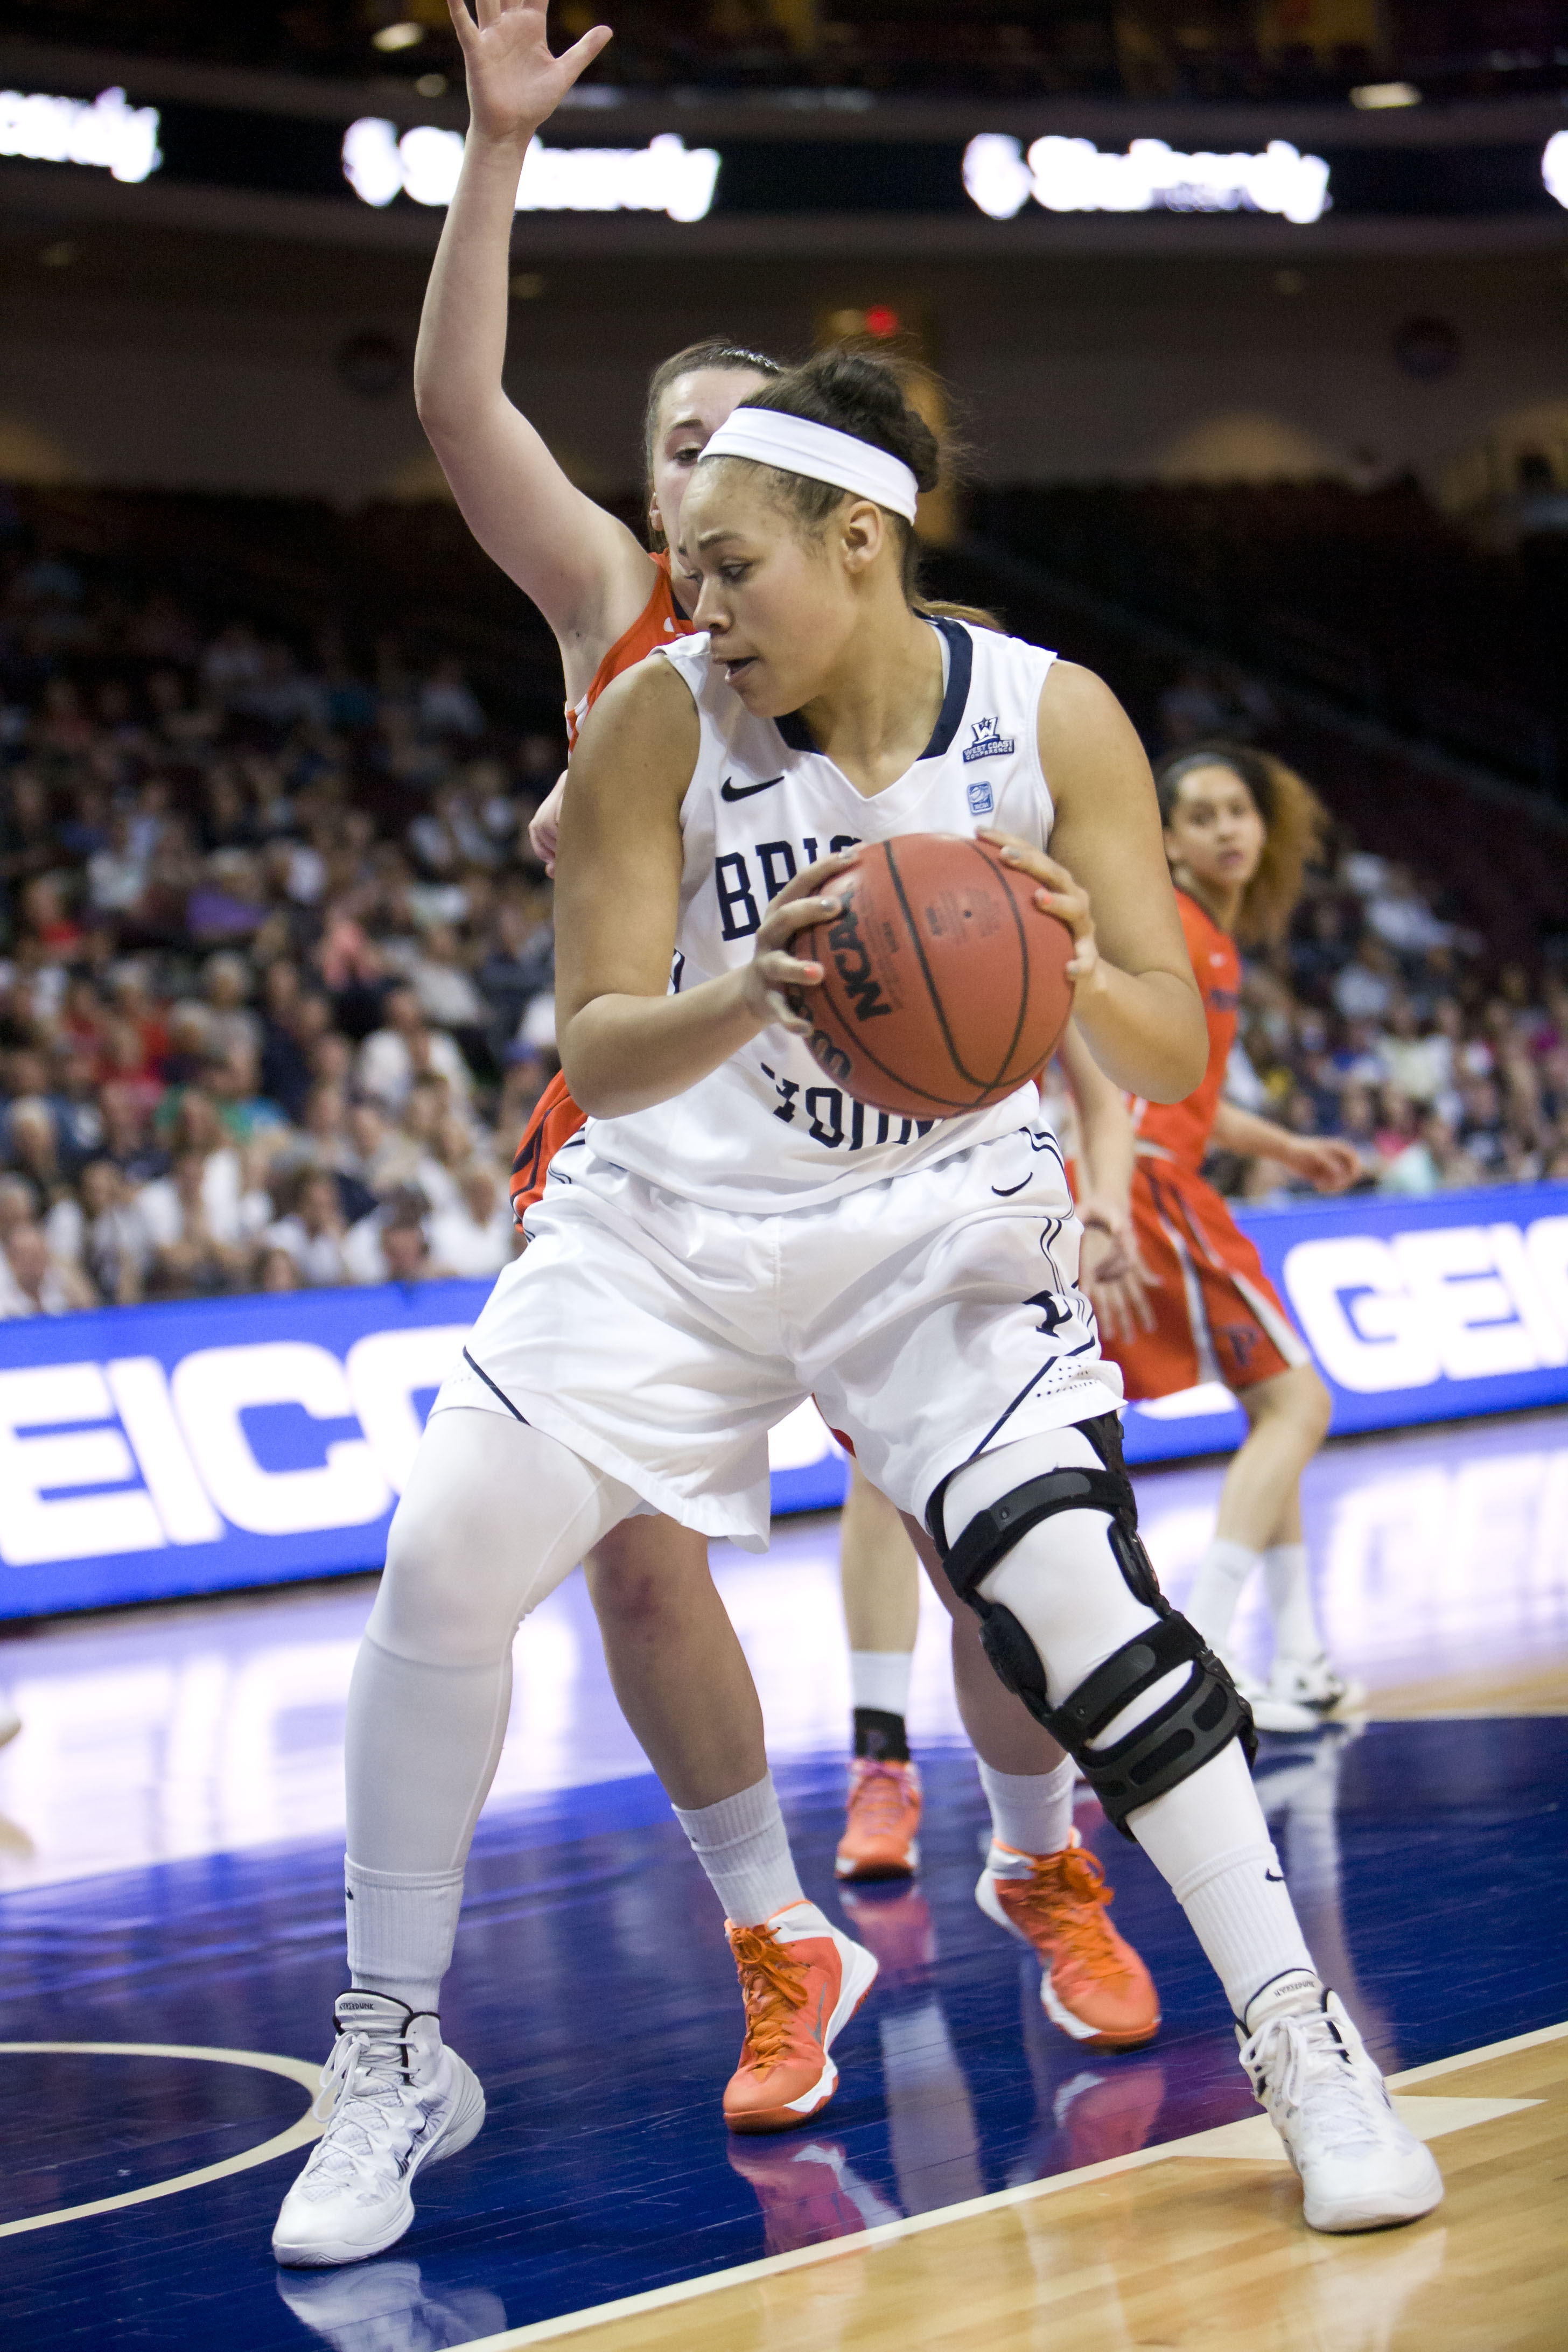 Morgan Bailey works around a Pepperdine player in Friday's WCC tournament game.